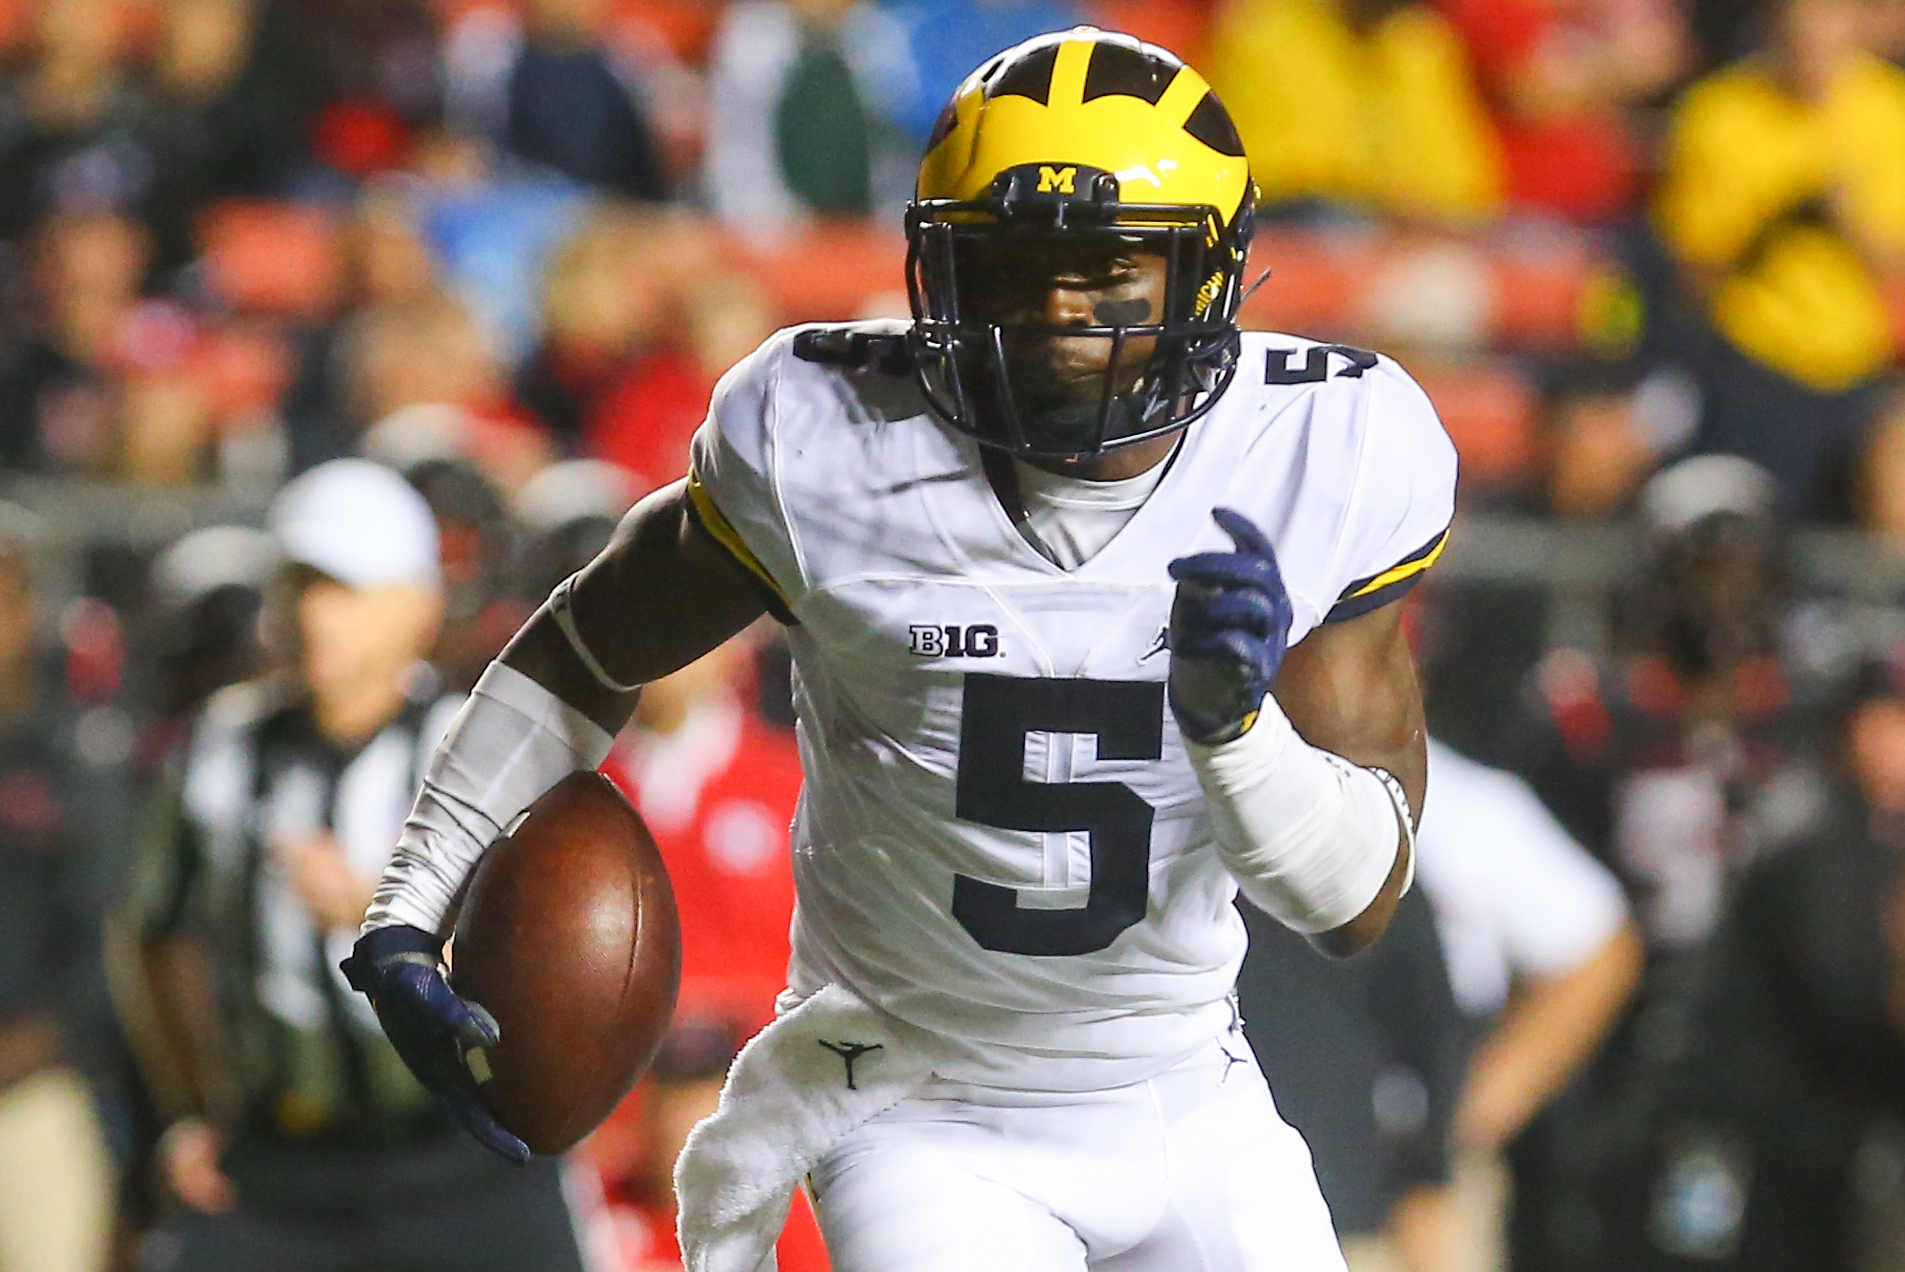 newest collection c4604 cbe25 27 jabrill peppers jersey town